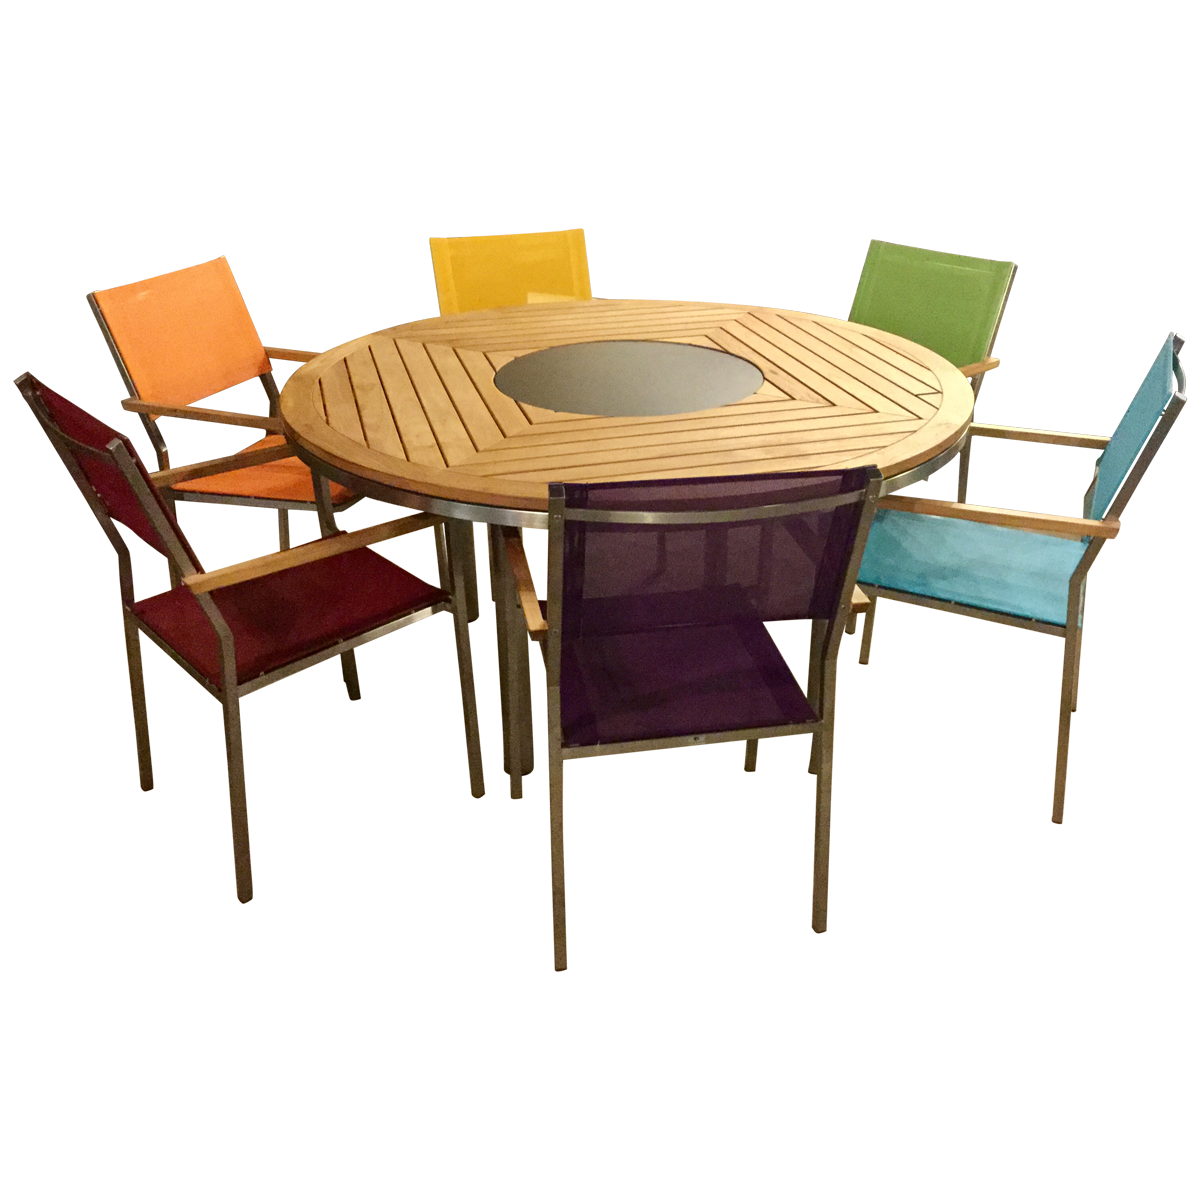 Kore Teak Round Outdoor Dining Table Round Outdoor Dining Table